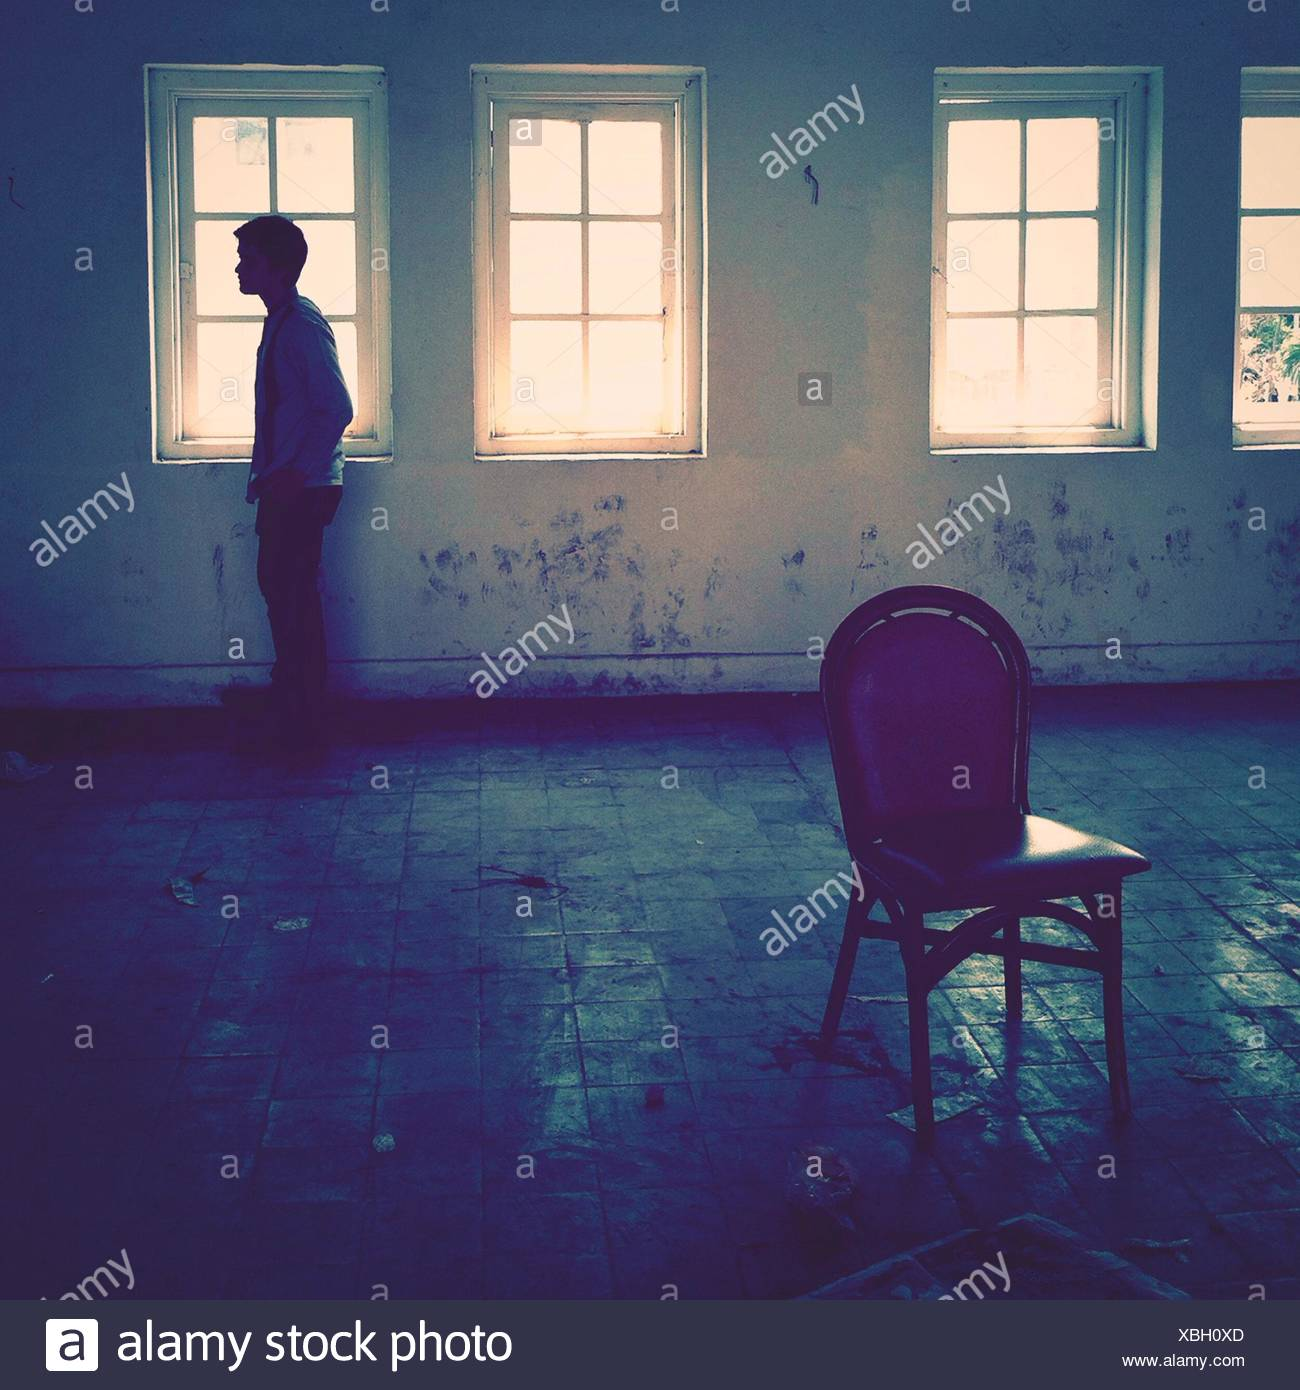 Side View Of A Man Standing In An Empty Room - Stock Image